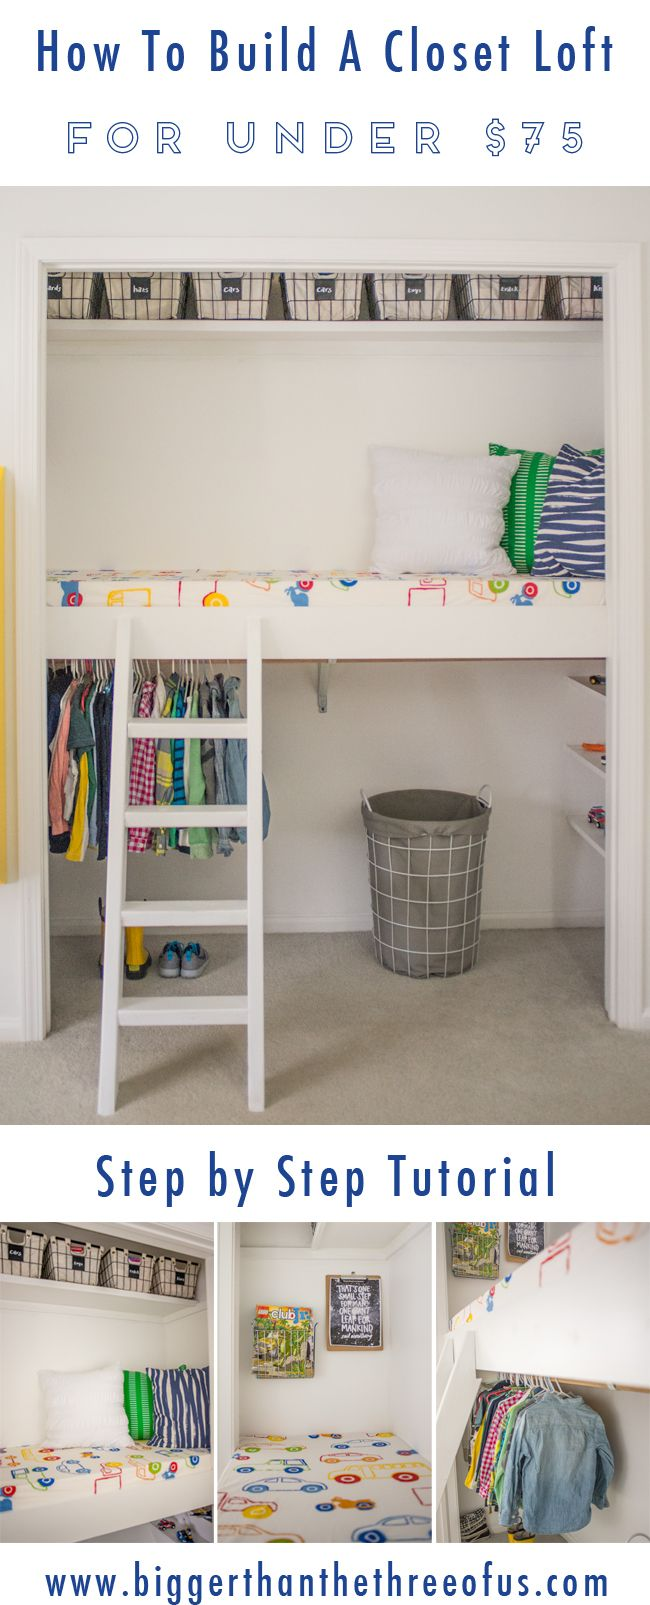 This Step By Step Tutorial Will Show You How To Build A Closet Loft For  Under $75! Itu0027s A Great Place For Climbing, Reading U0026 Just To Hangout! #loft  #howto